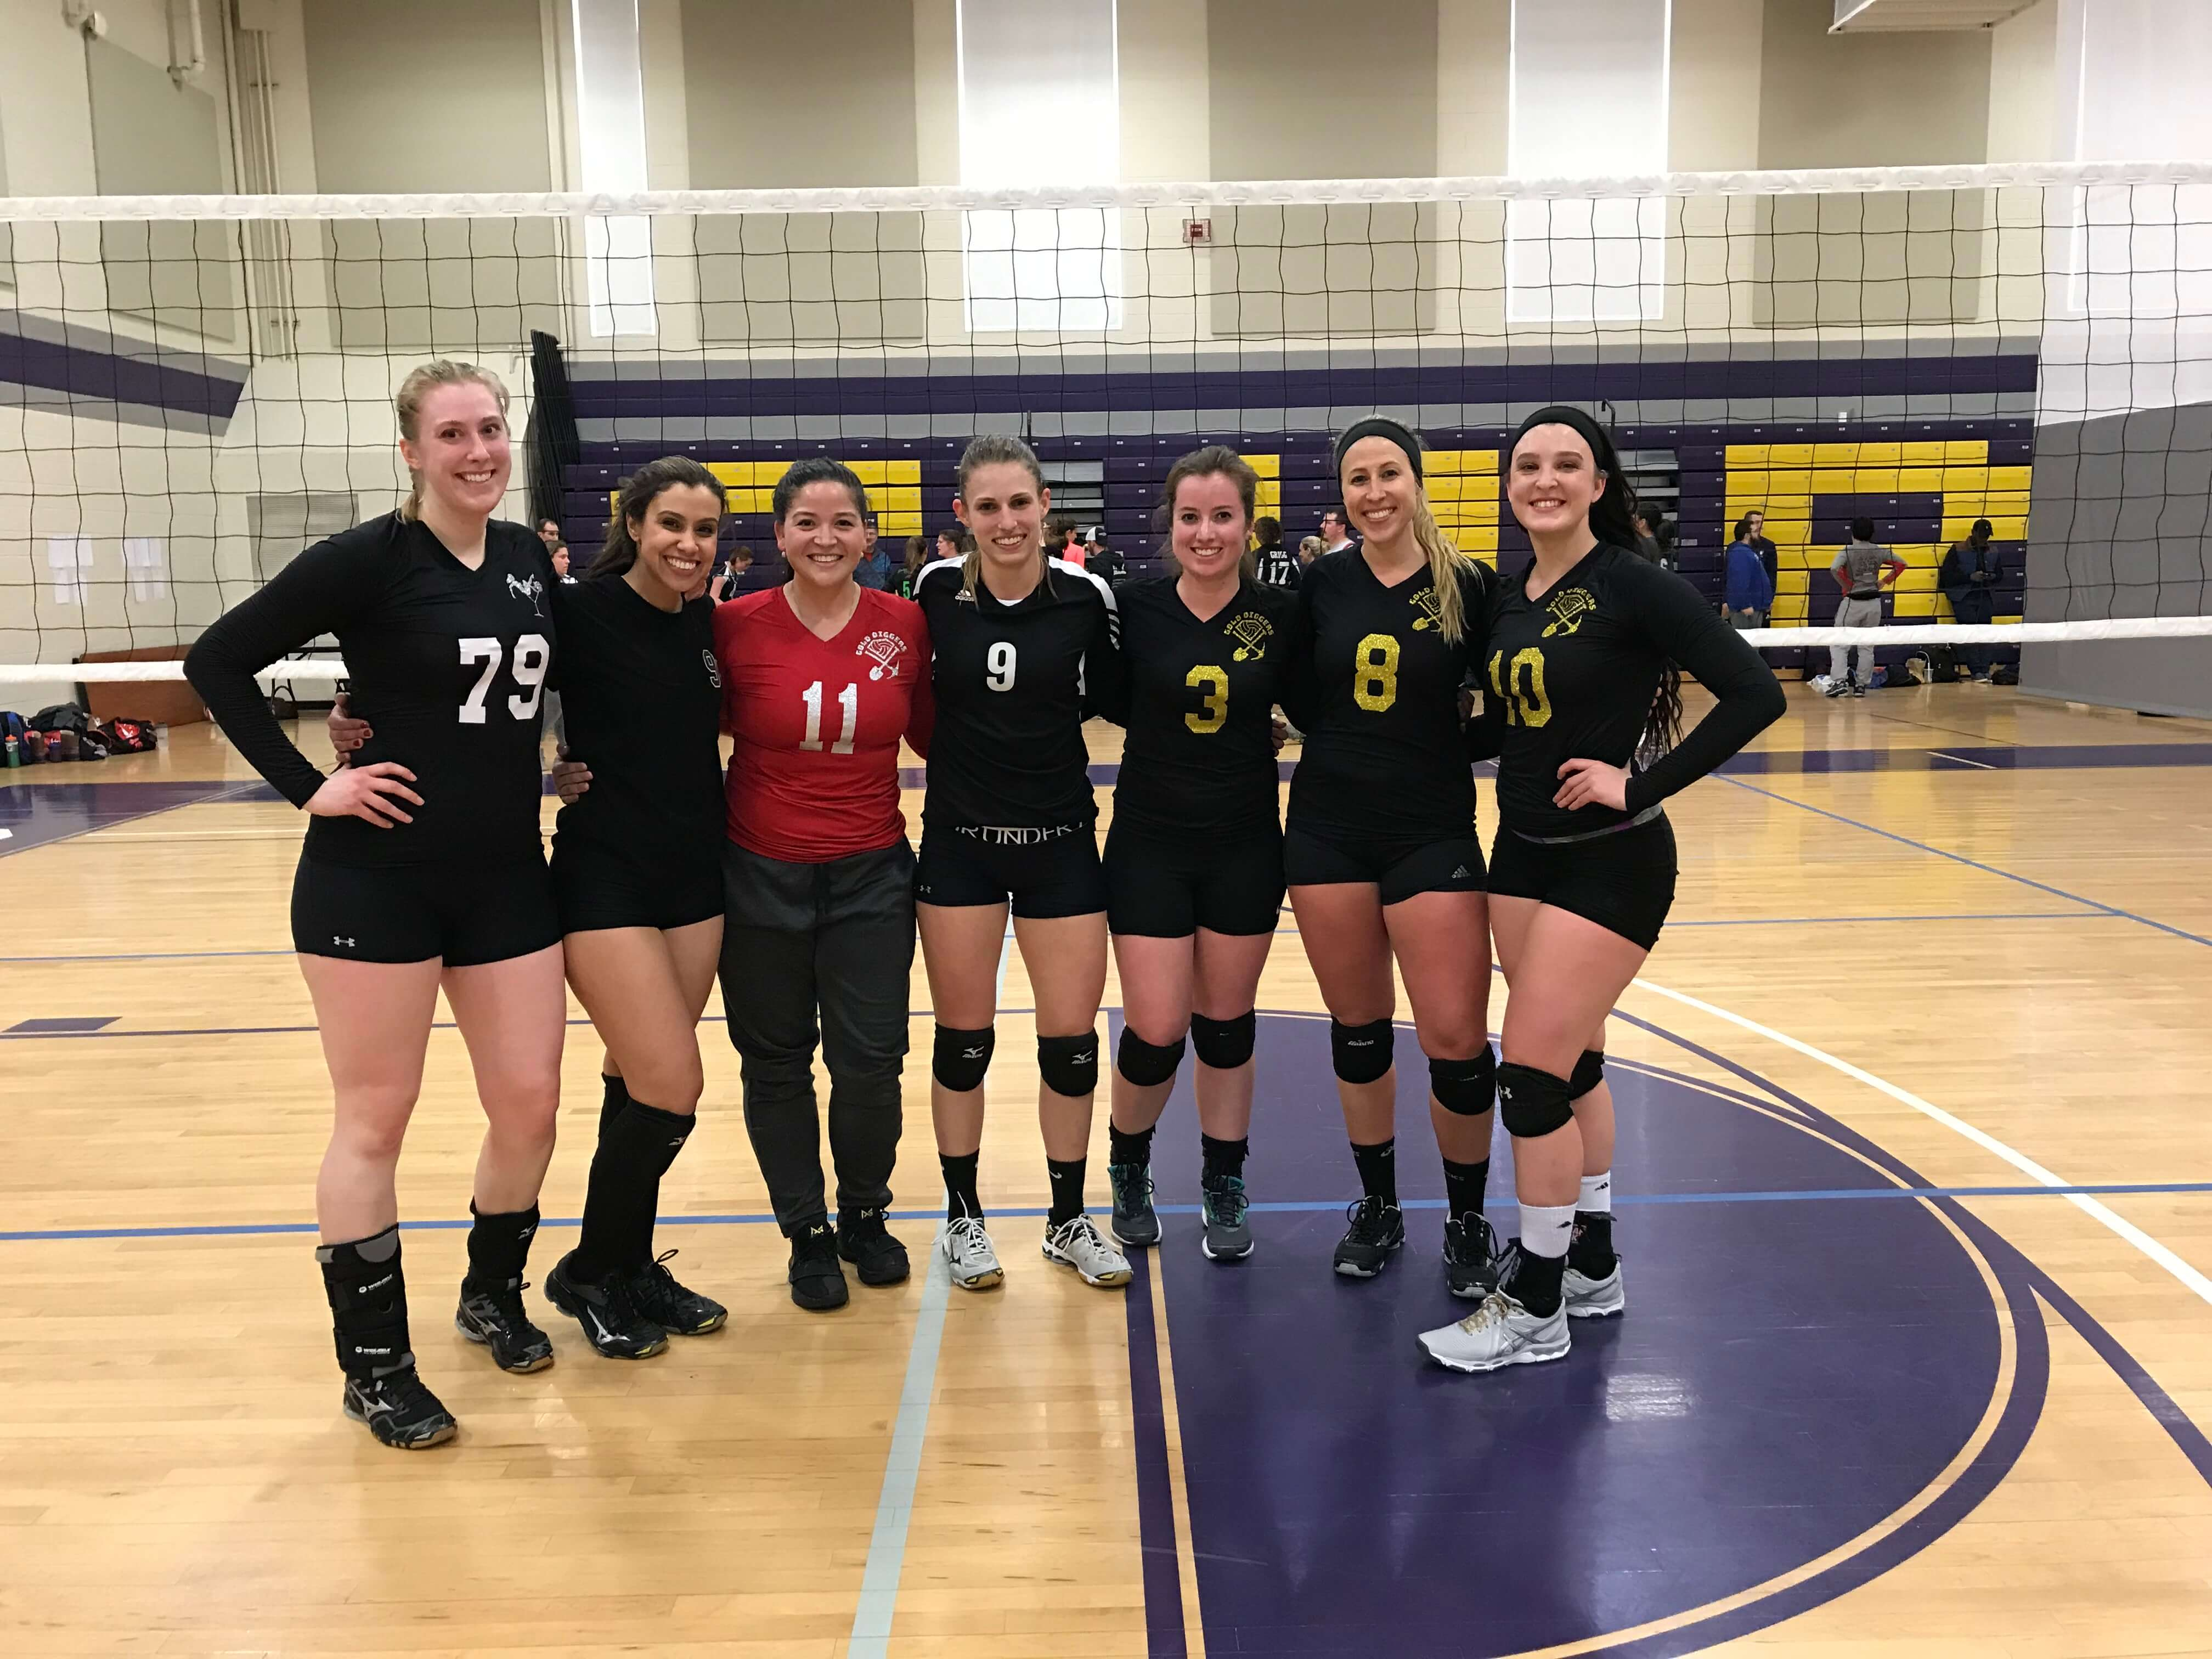 4/15/2018 Gold Diggers defeat Whoo-pass to win WB- at Curry College